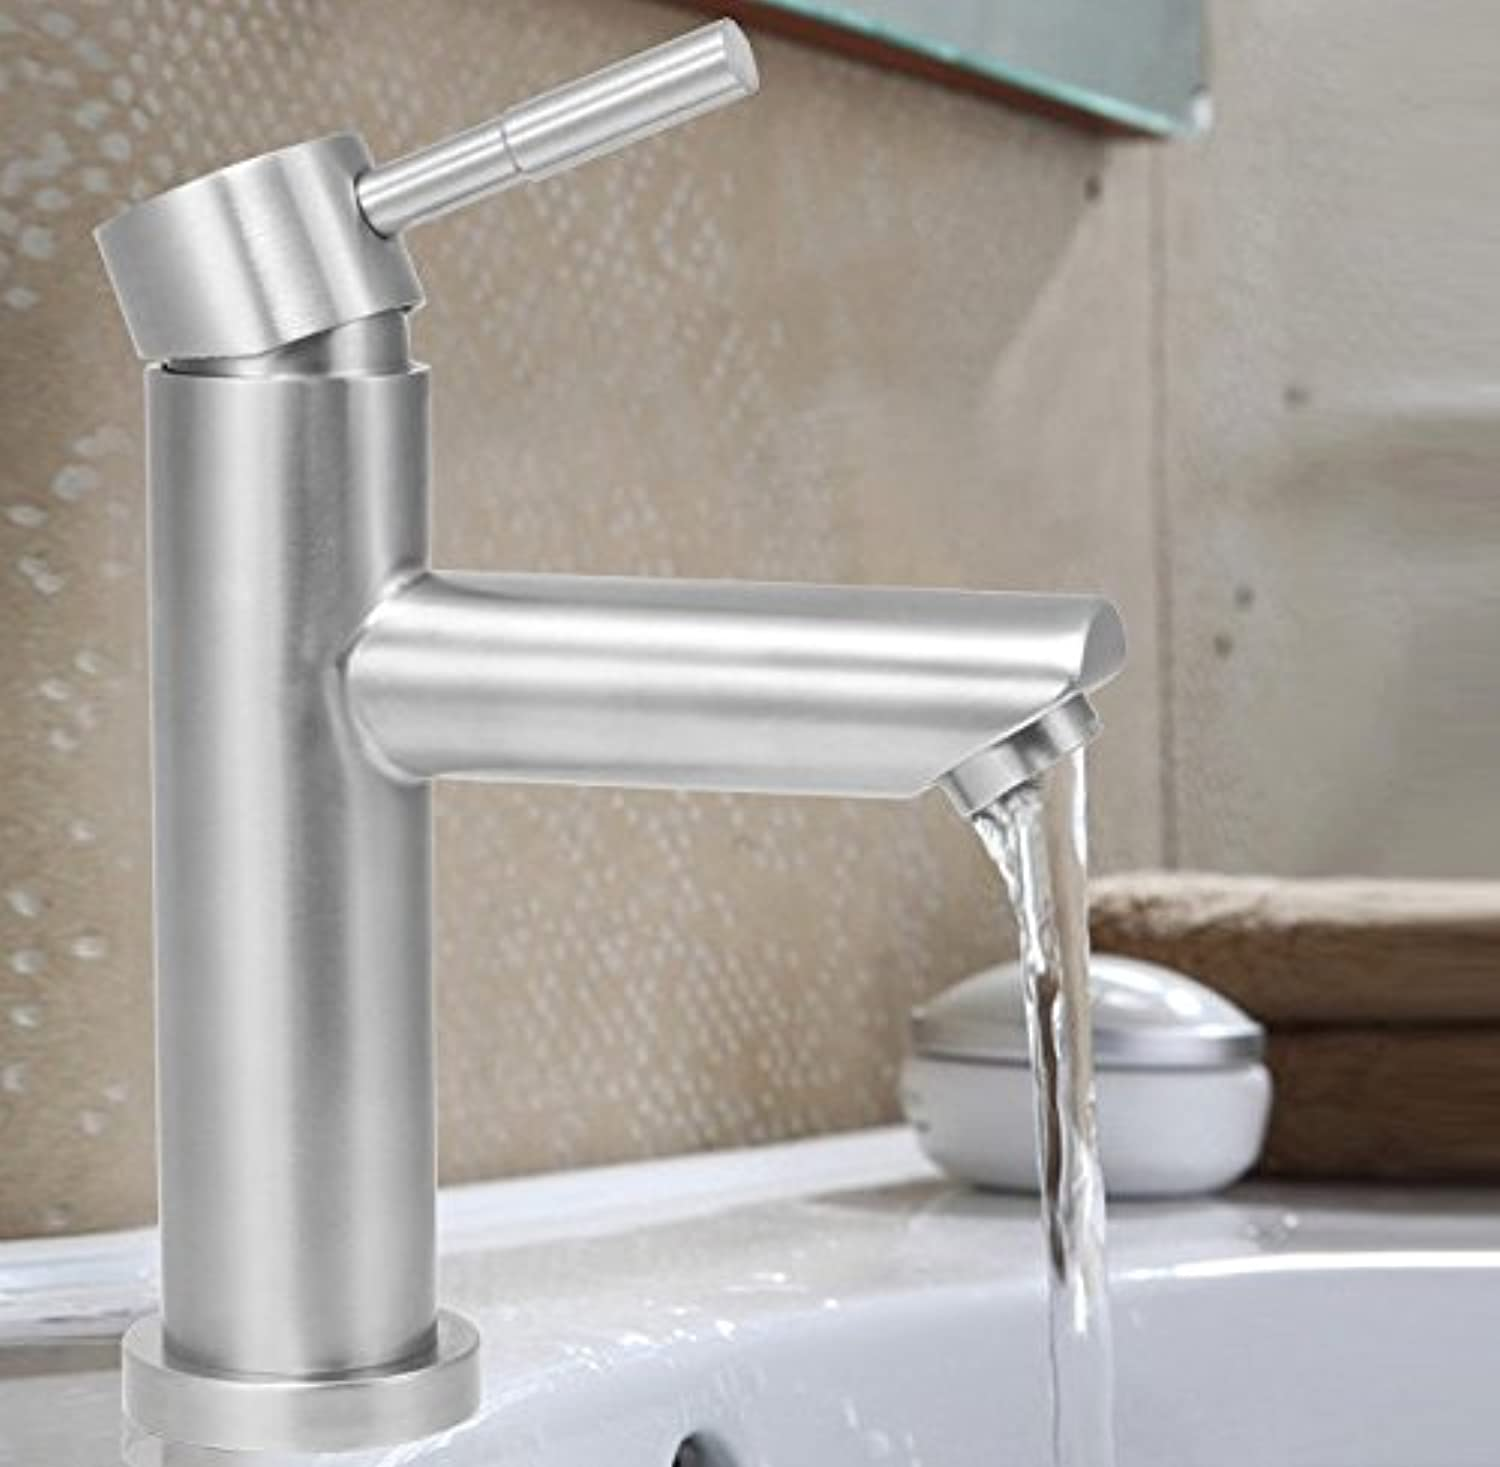 Faucet Hot and Cold Washbasin, Household Faucet, Tap Water, Household